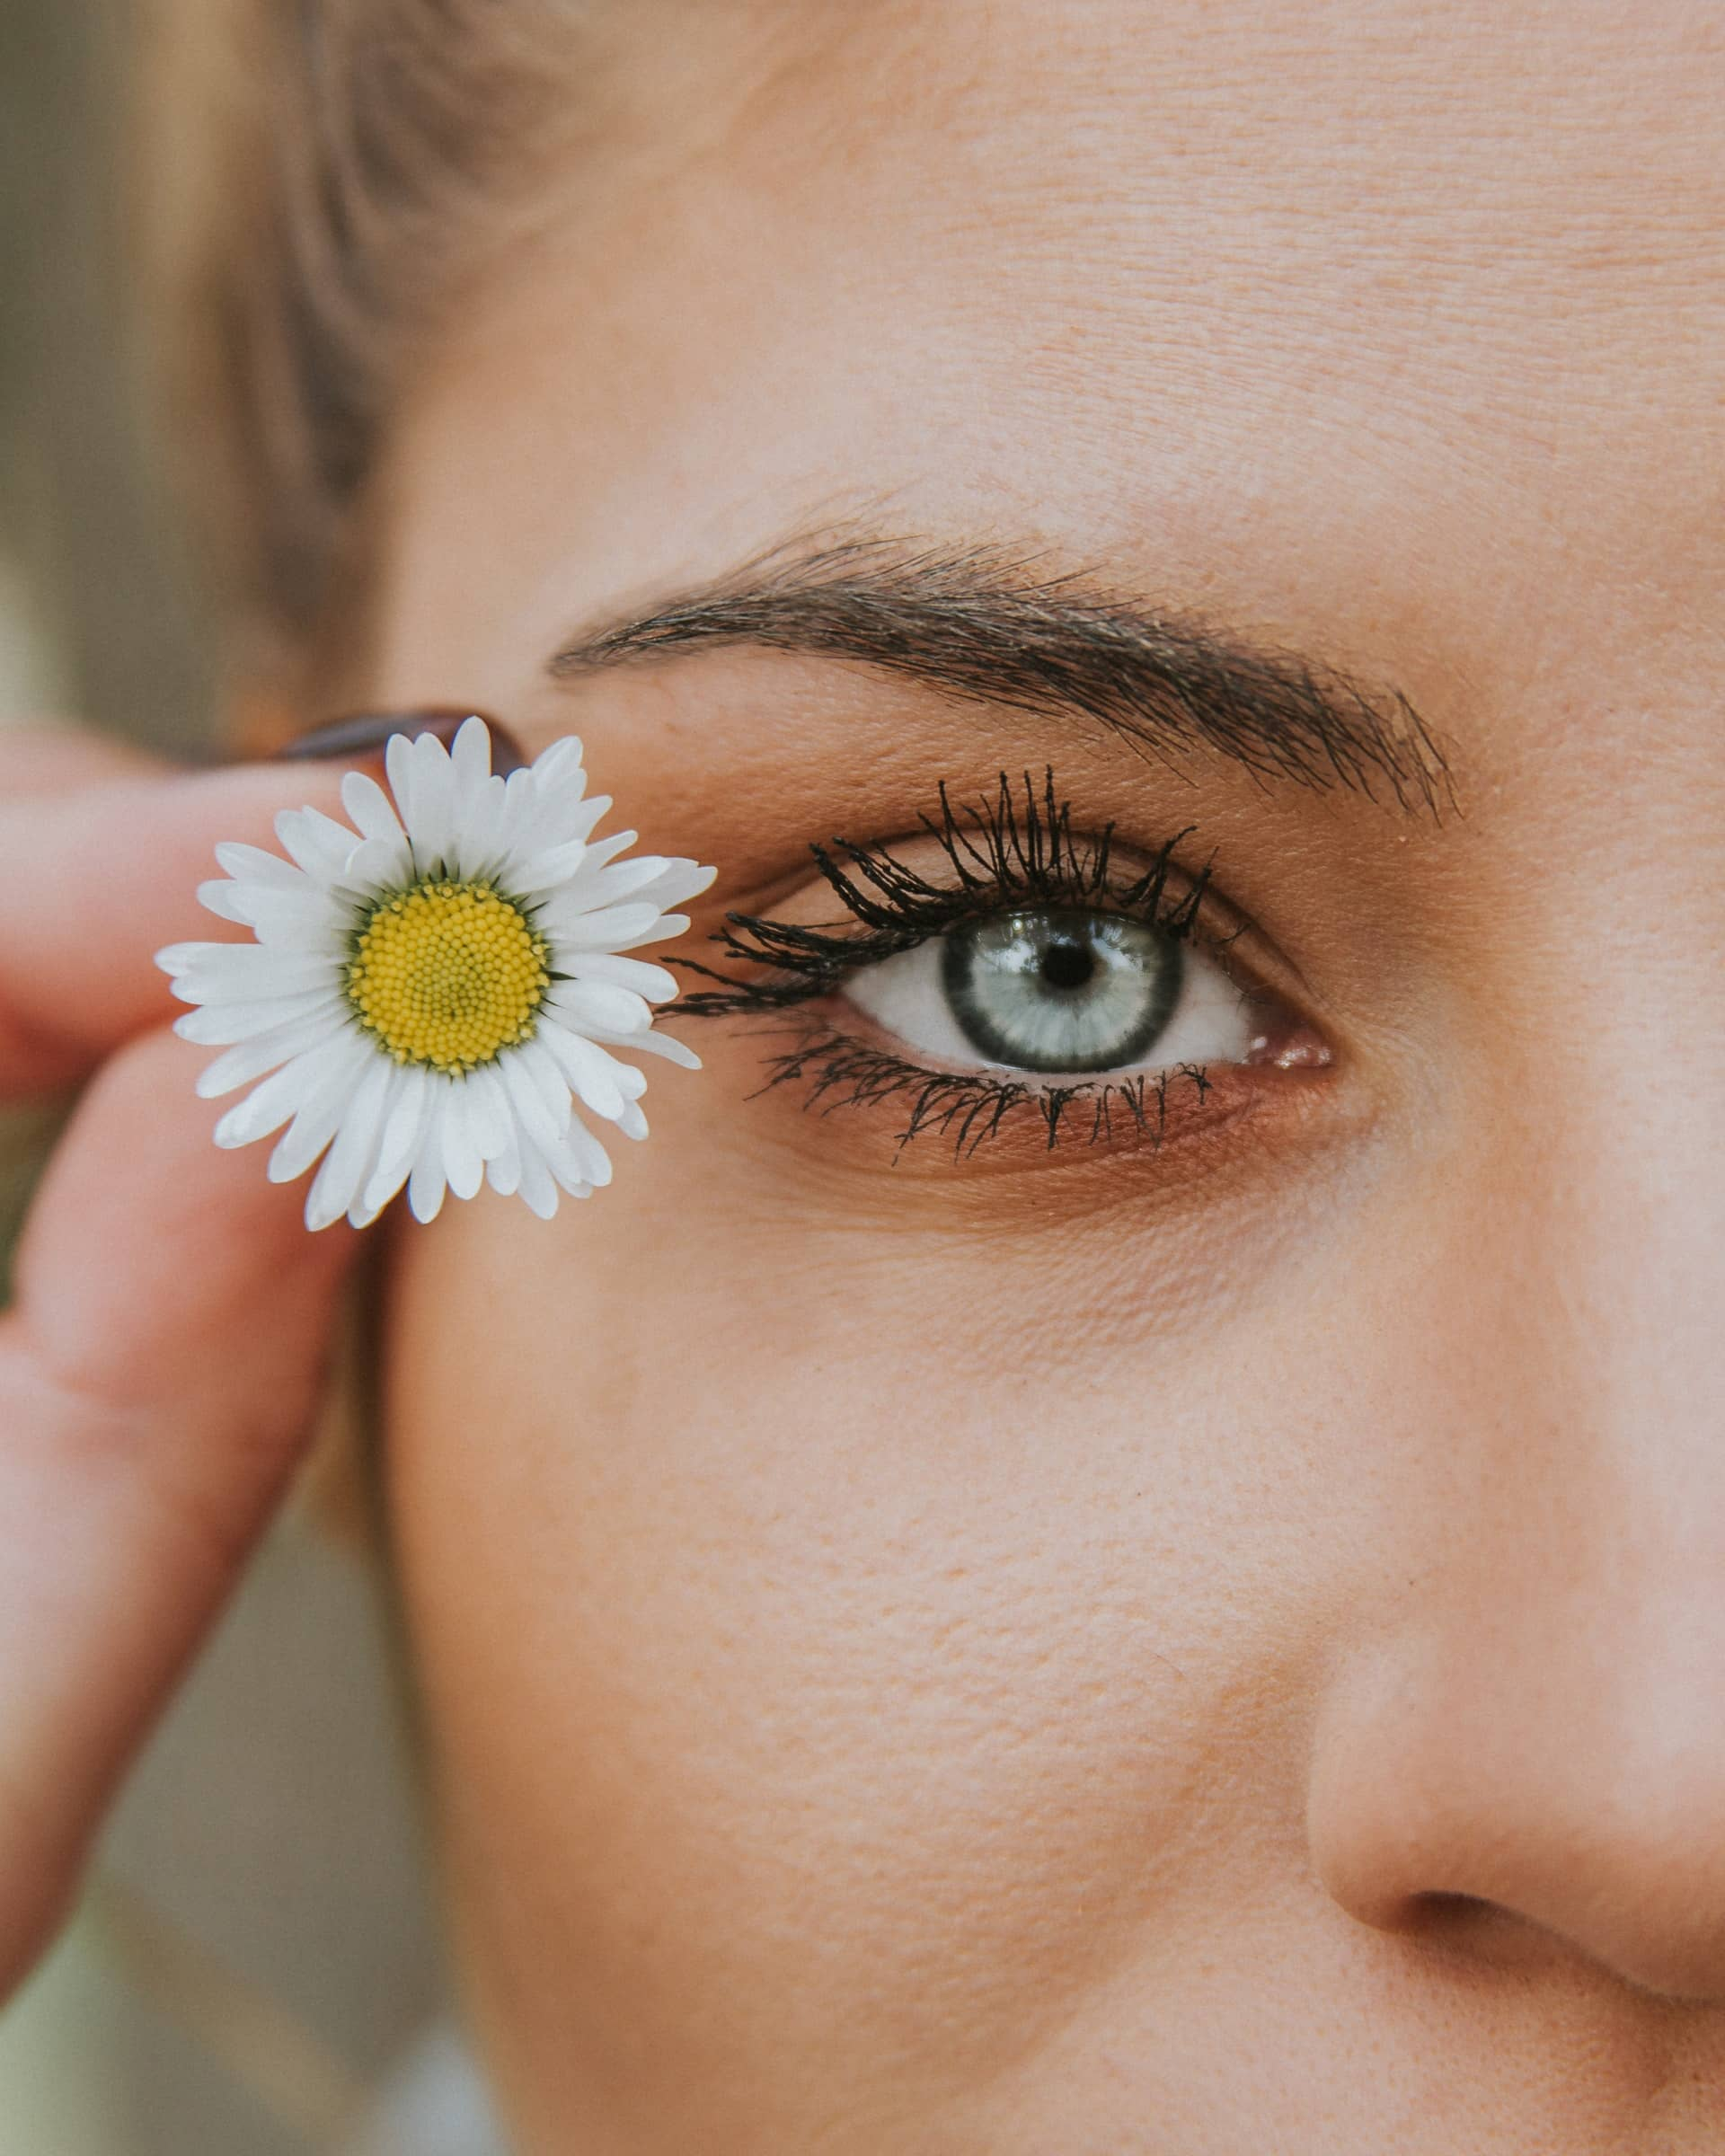 eyebag surgery in london, essex and kent